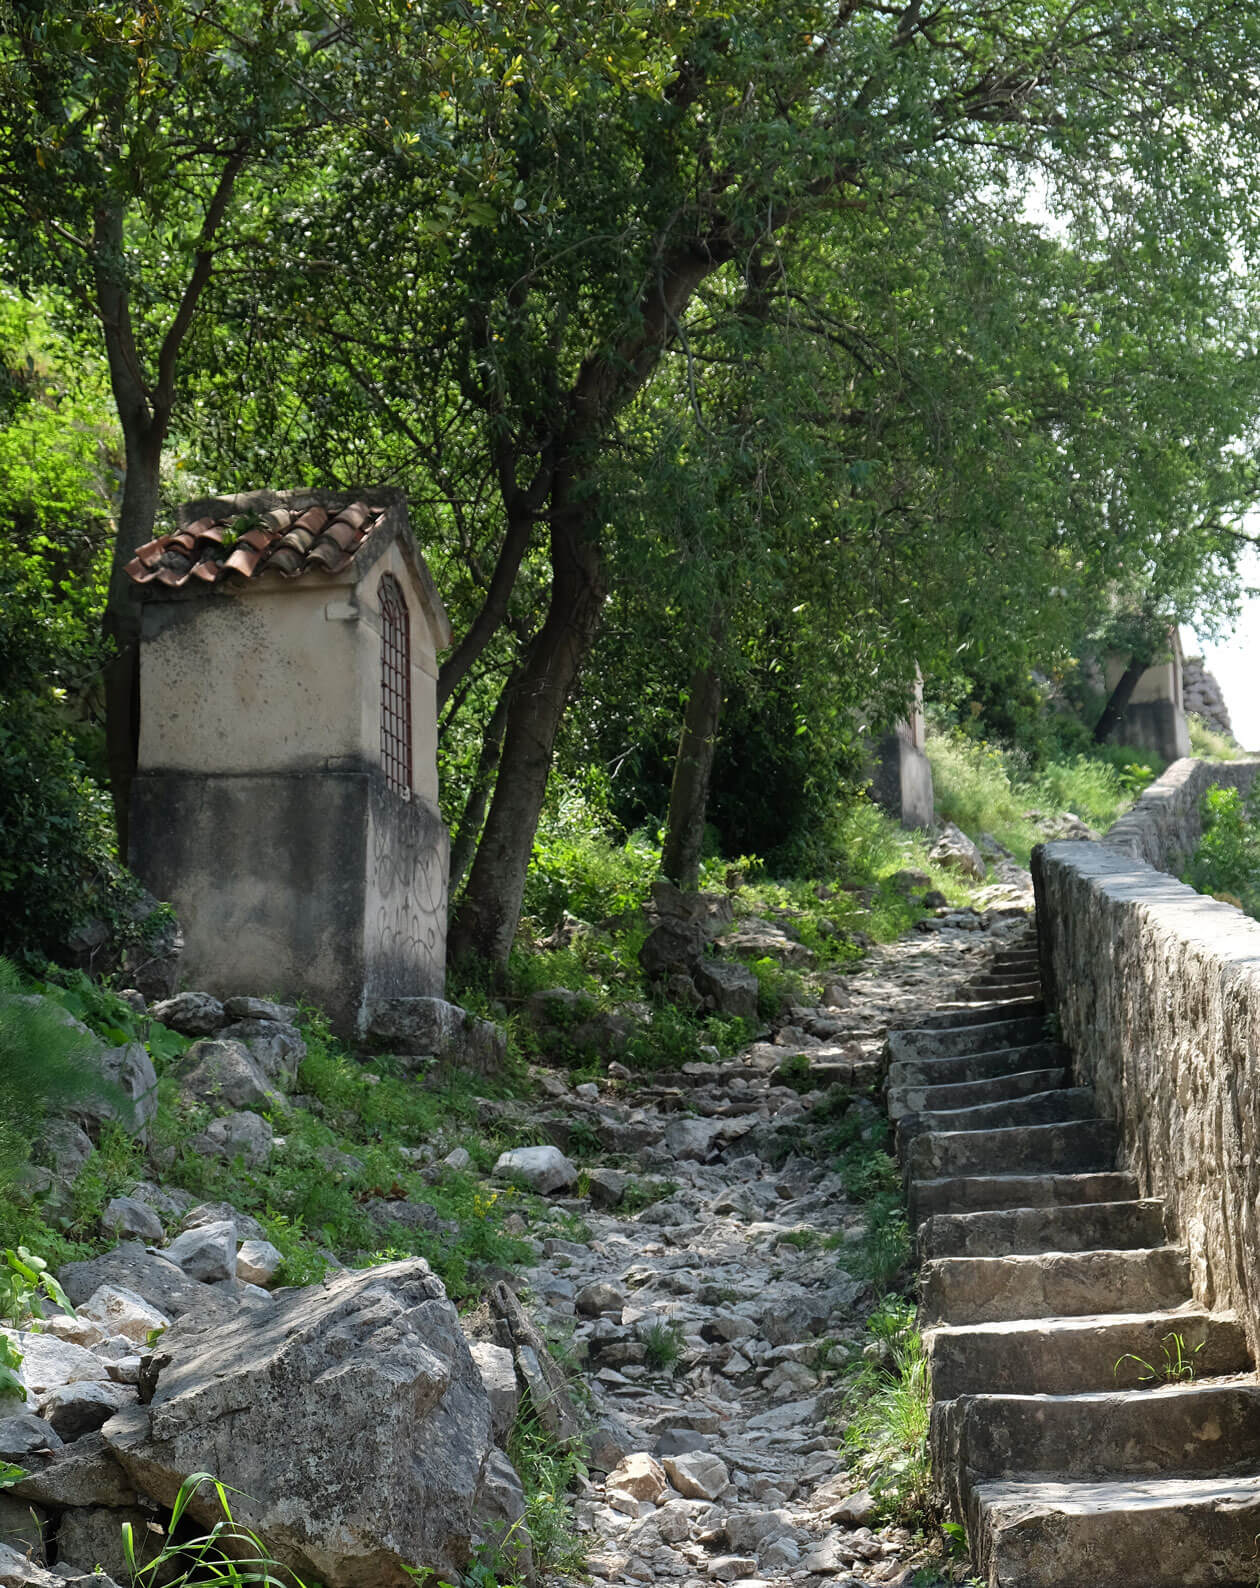 The path up to the church and fortress is beautiful but in a poor condition